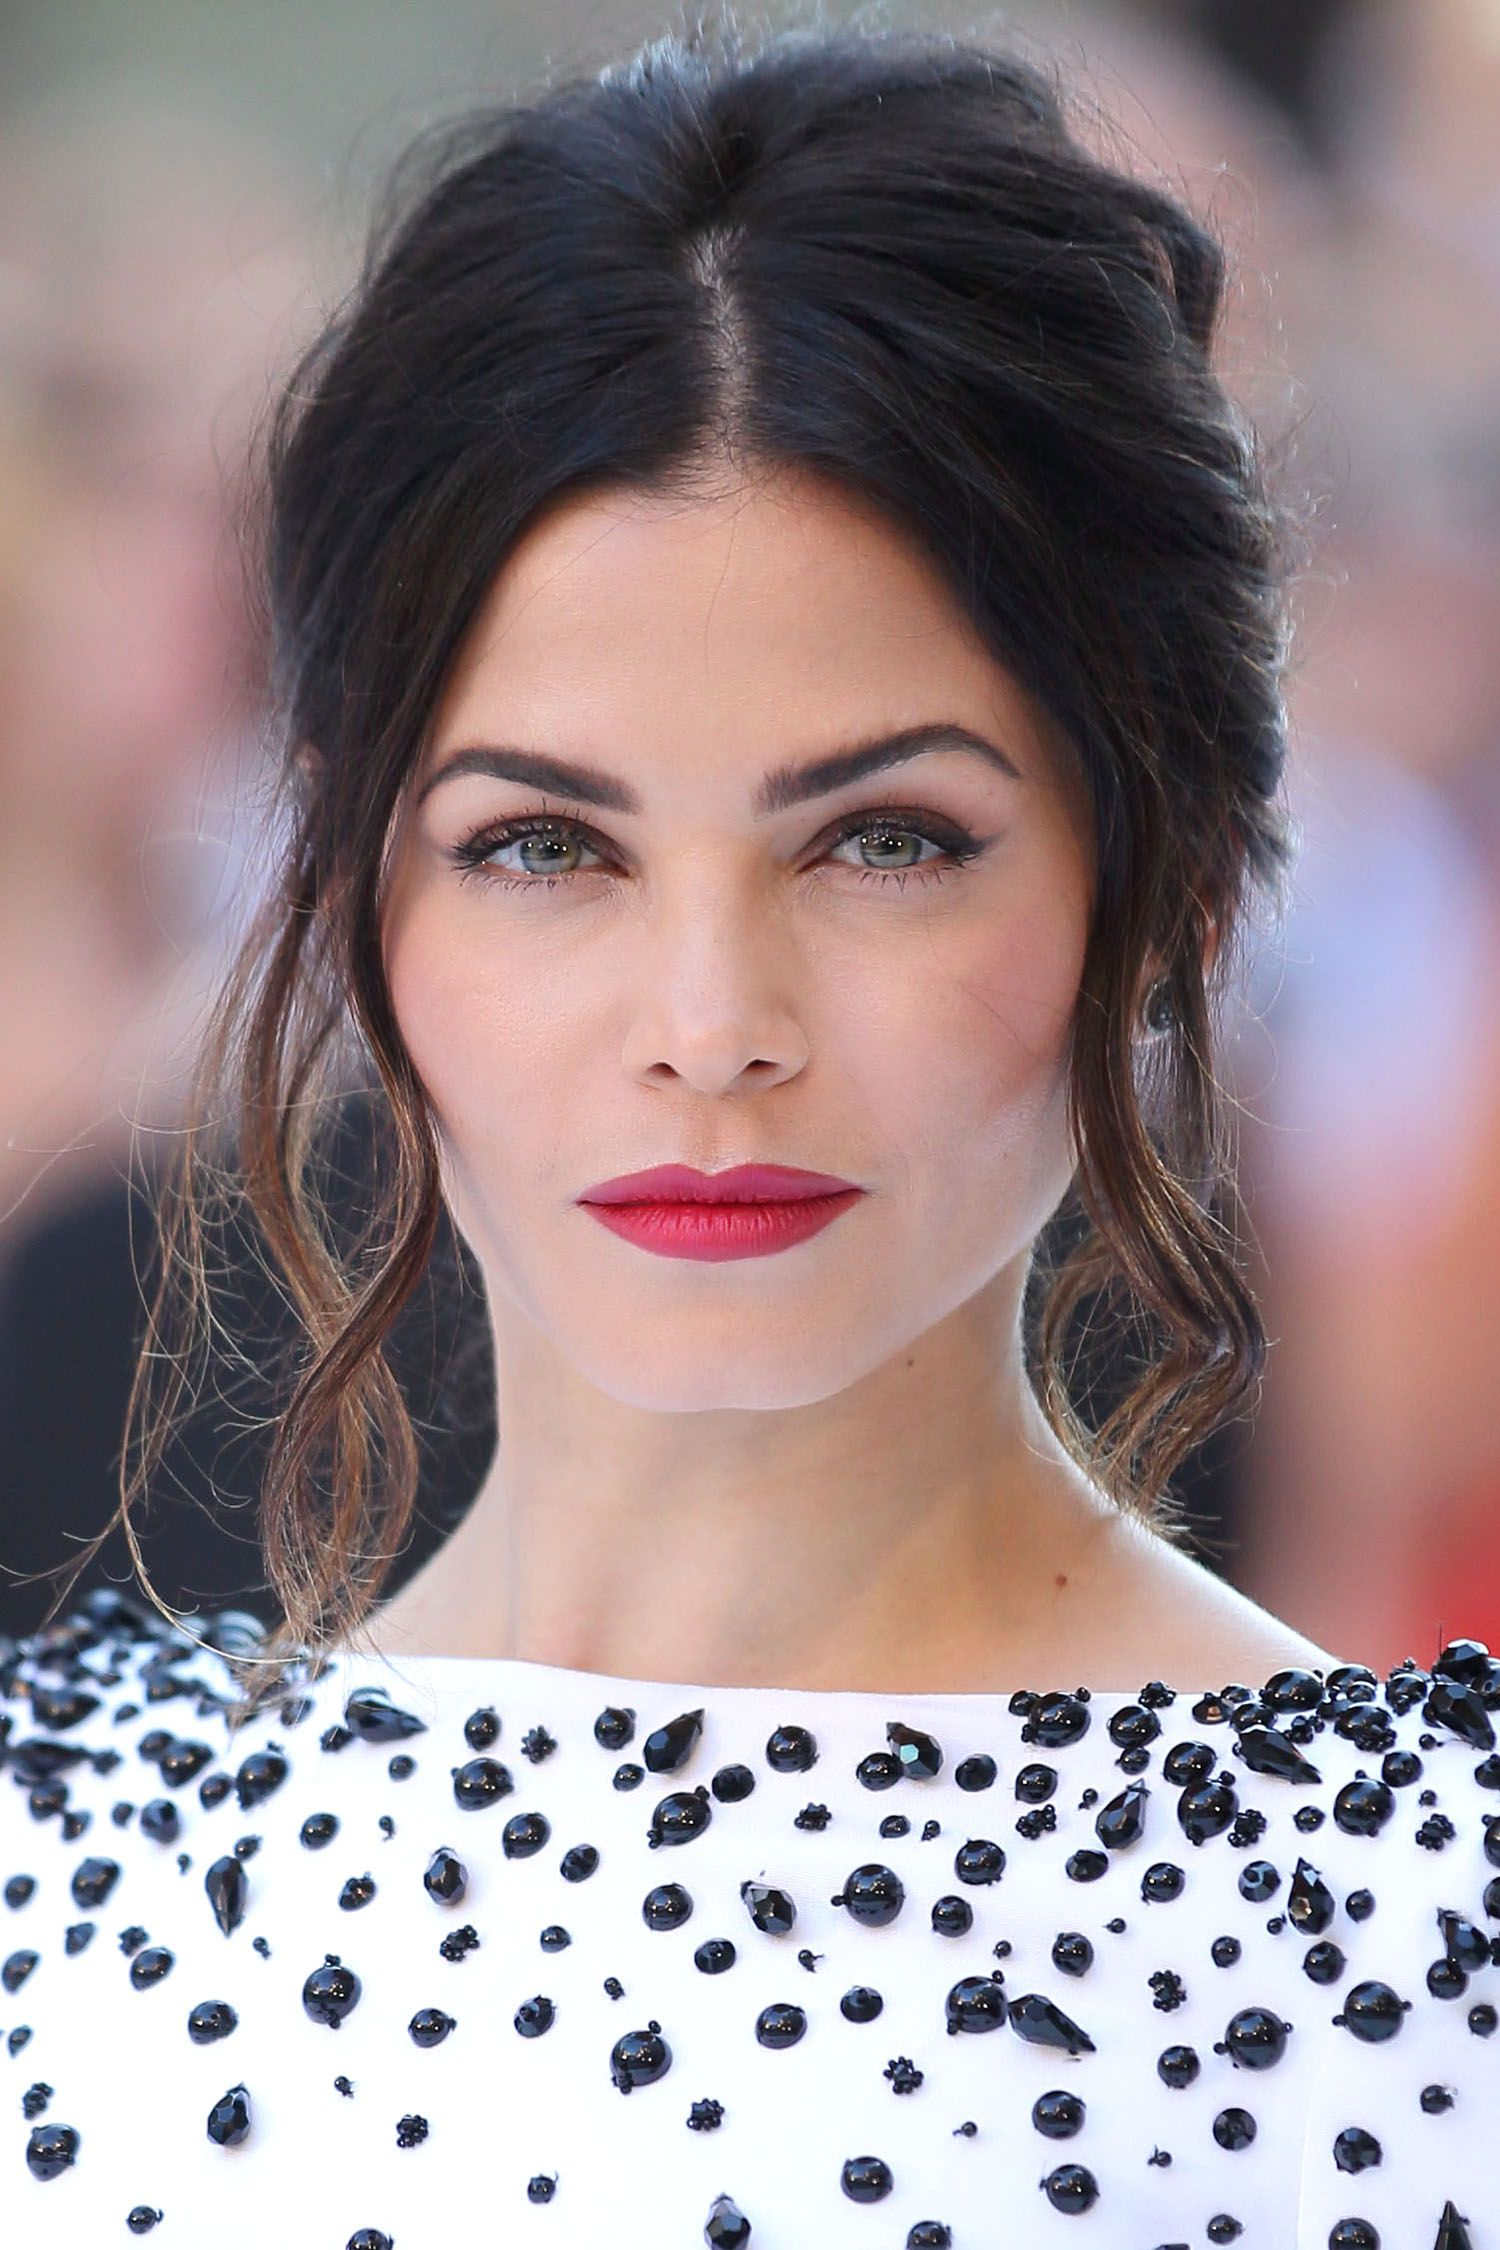 """Who: Jenna Dewan-Tatum What: French Volume How-To: Hairstylist Dayaruci gave the actress a """"French-mod updo"""" to show off the embellished neckline on her Zuhair Murad jumpsuit. To give her hair toned-down Bardot volume, he used thickening mousse on wet strands, then curled random sections and teased the roots with texture spray. Leaving loose tendrils out at the front and keeping the twist in the back very low kept things """"sexy and not too polished."""""""